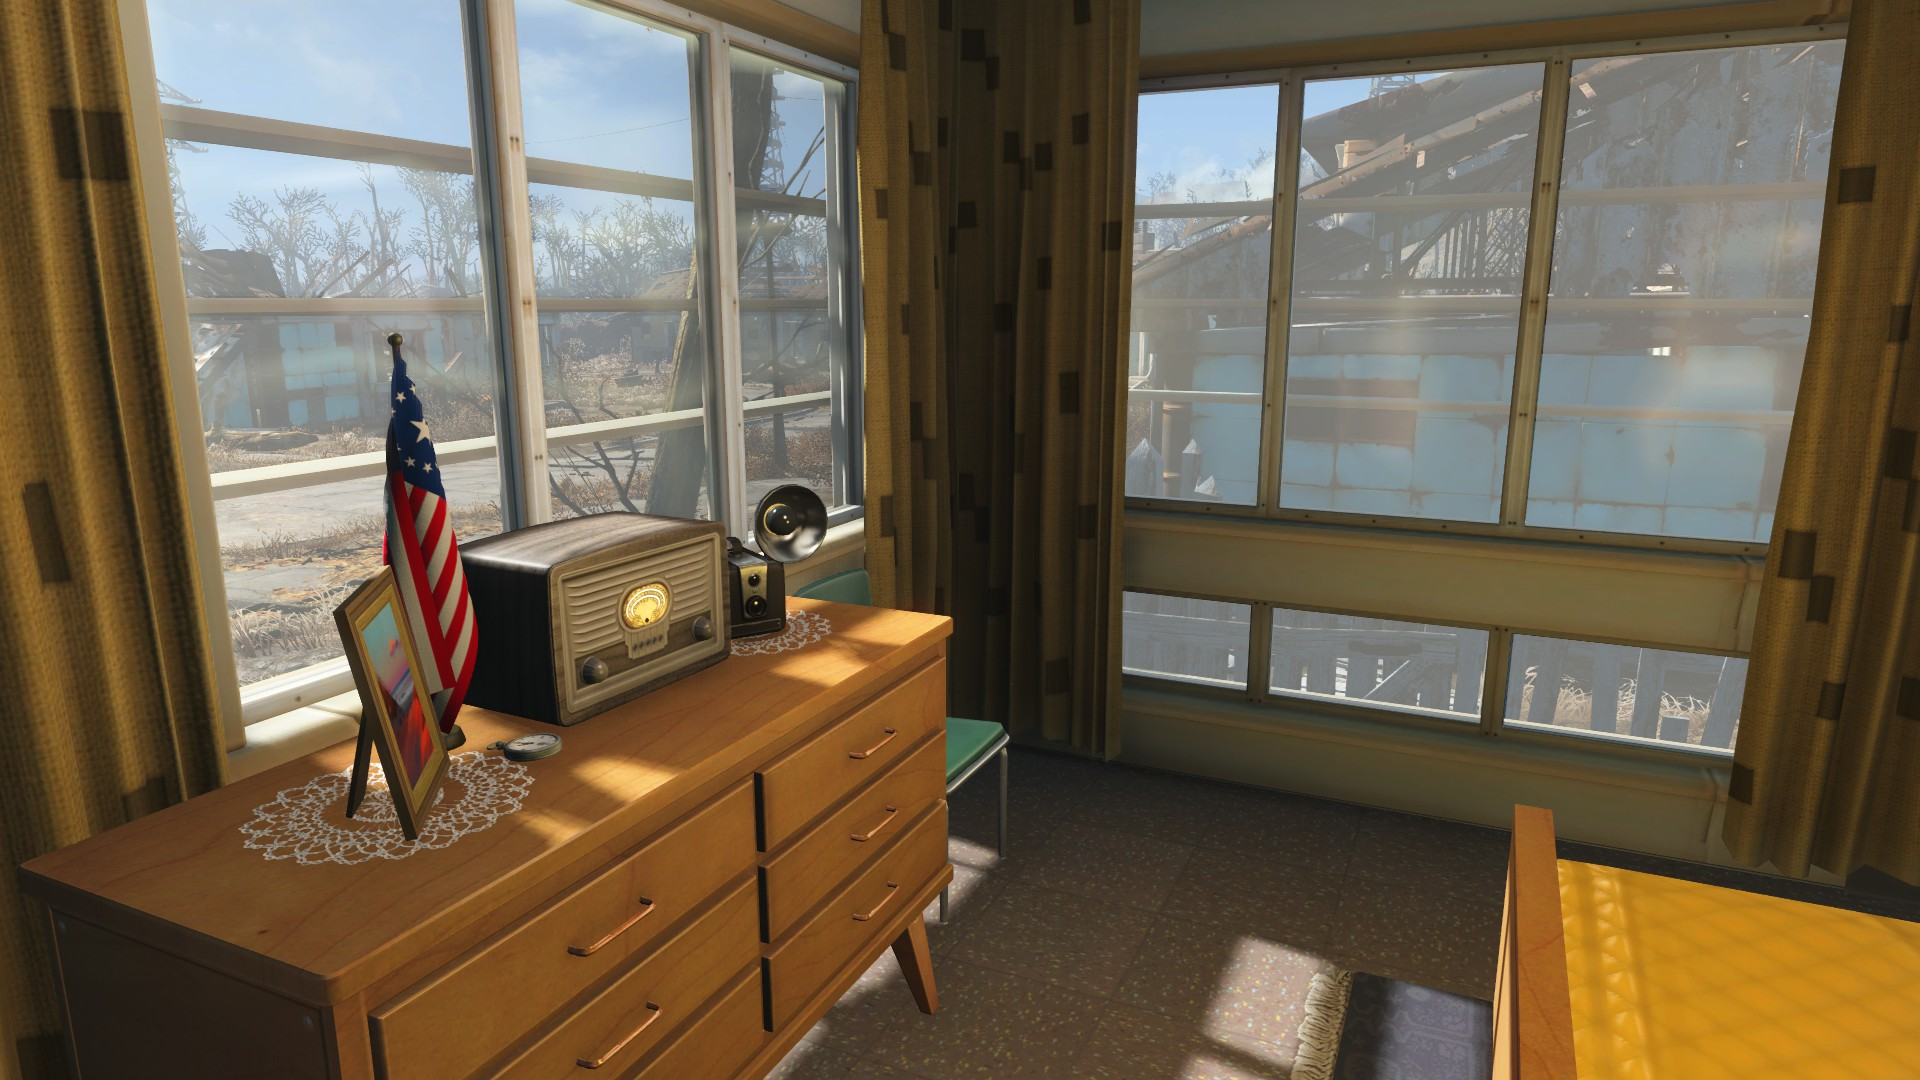 Sanctuary player home restored fallout 4 fo4 mods for Fallout 4 bedroom ideas